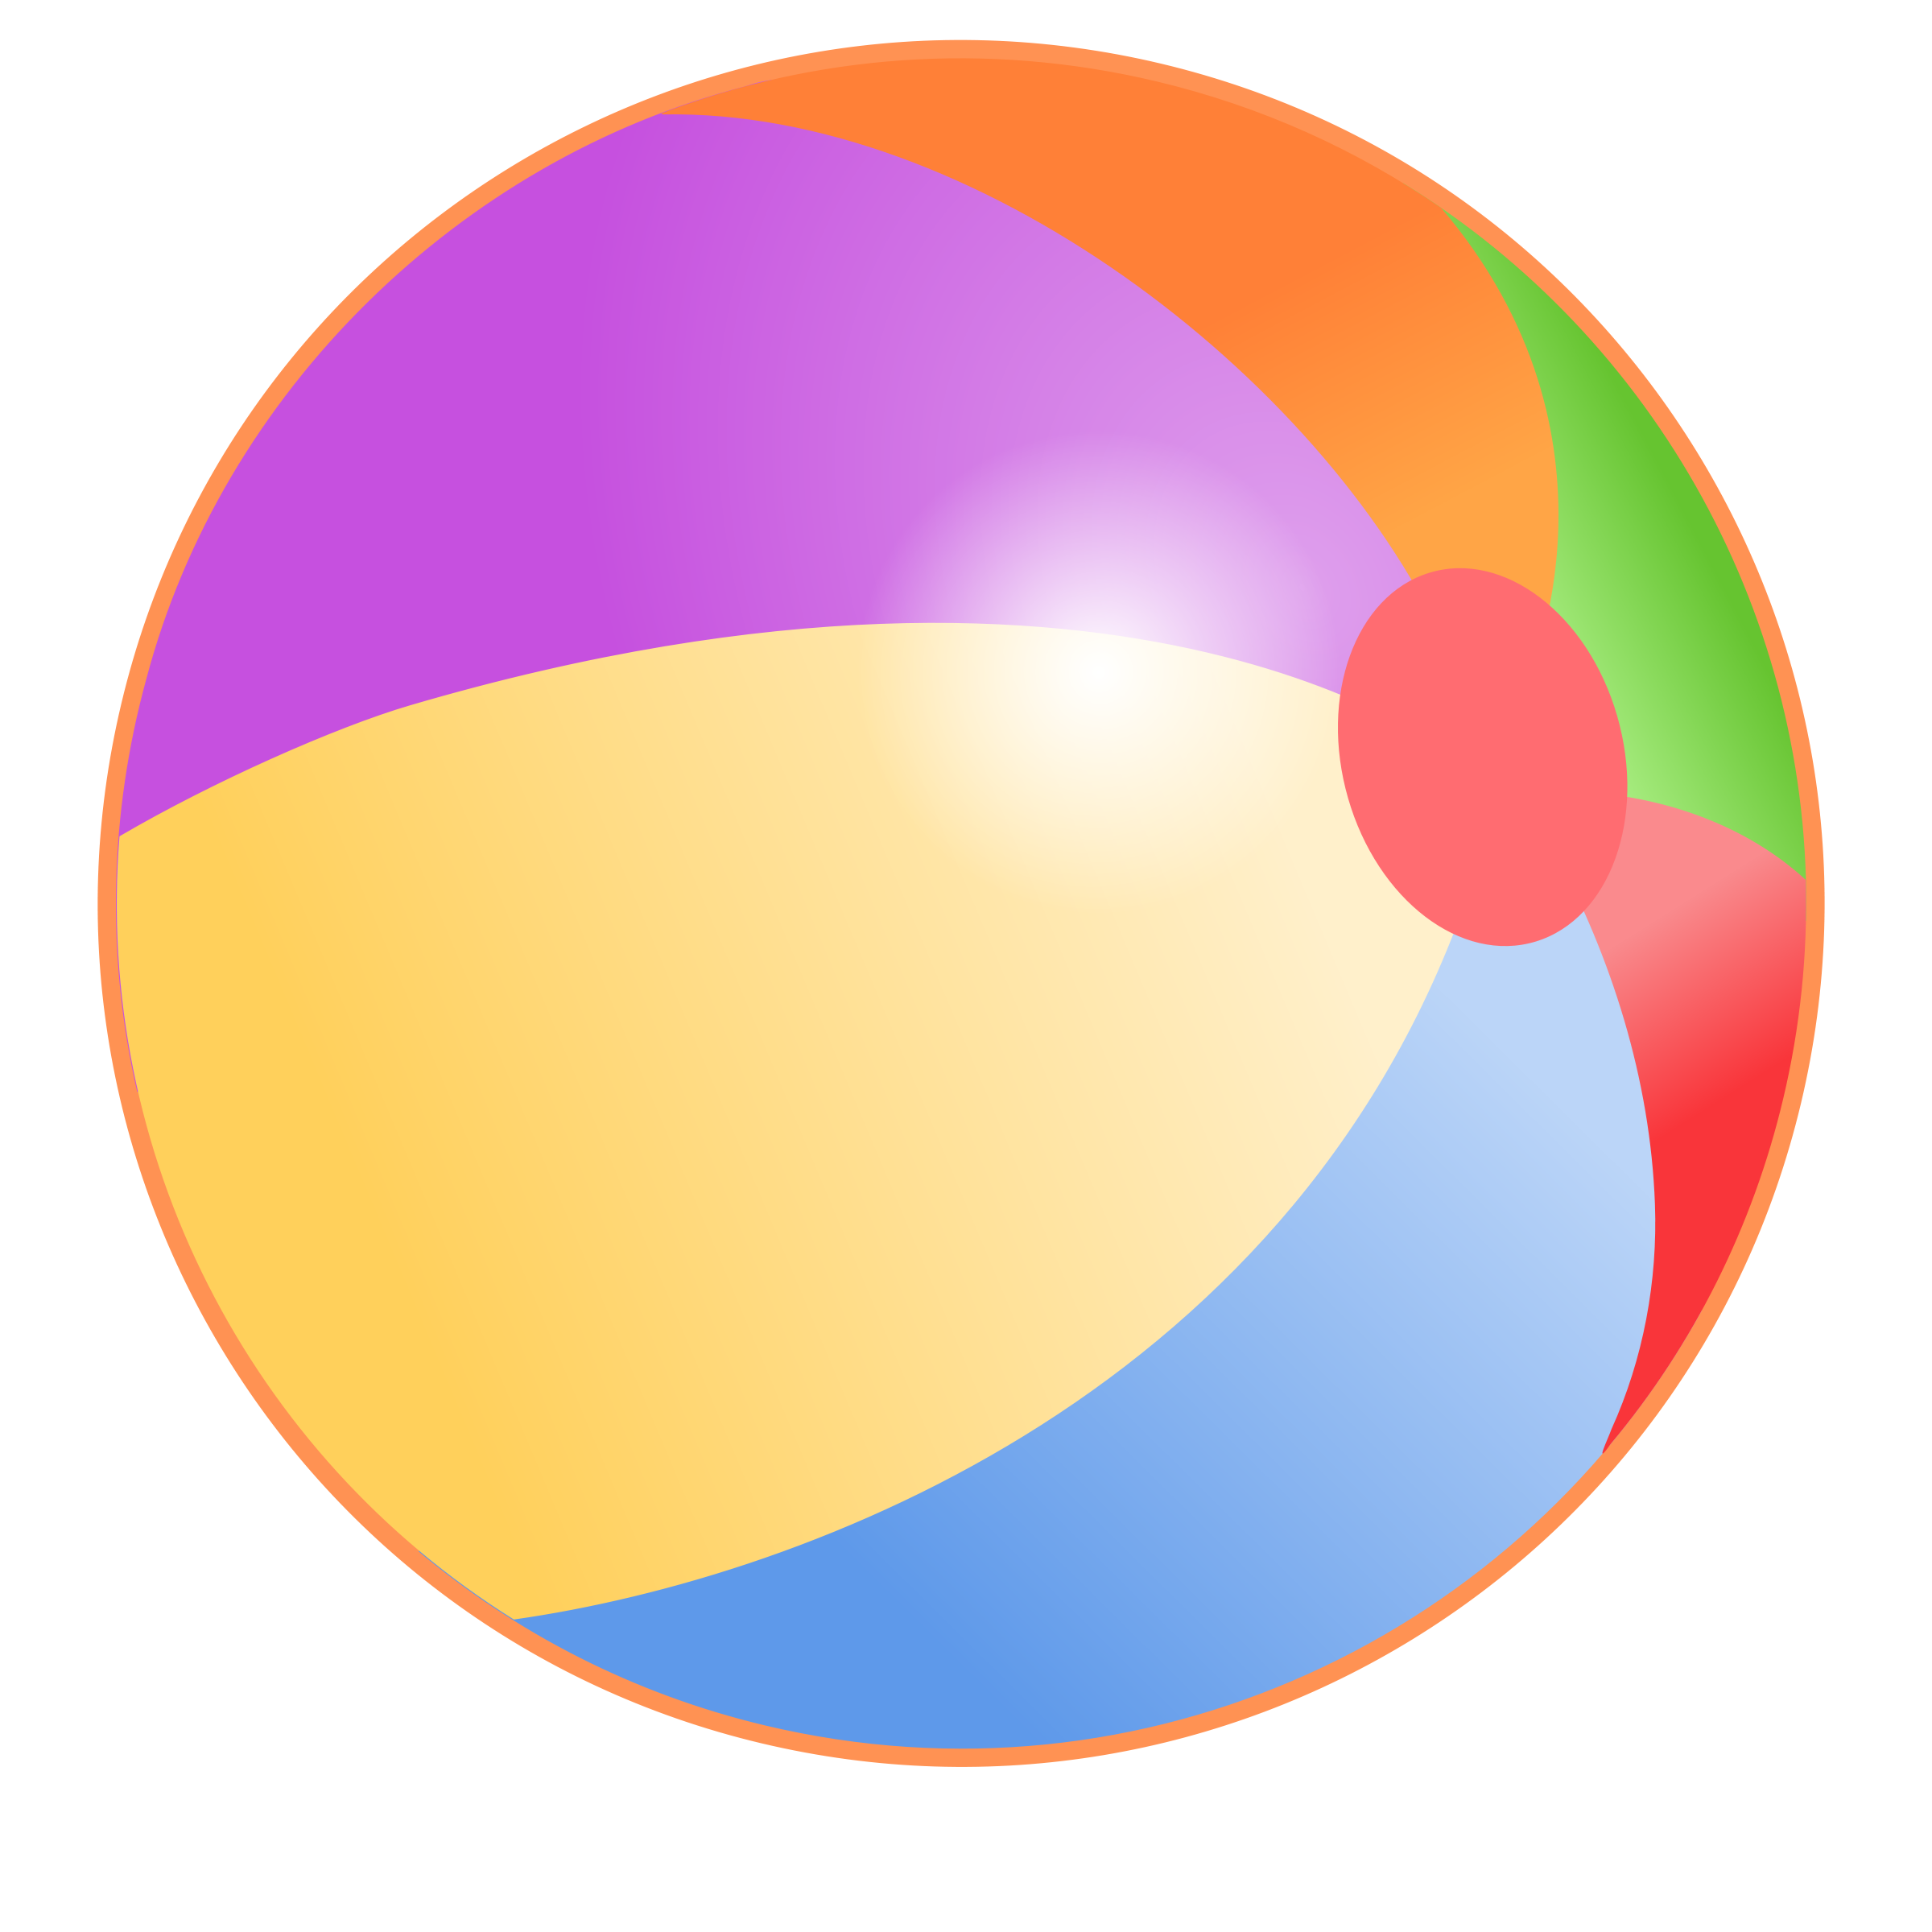 2400x2400 Download Beach Ball Free Png Photo Images And Clipart Freepngimg